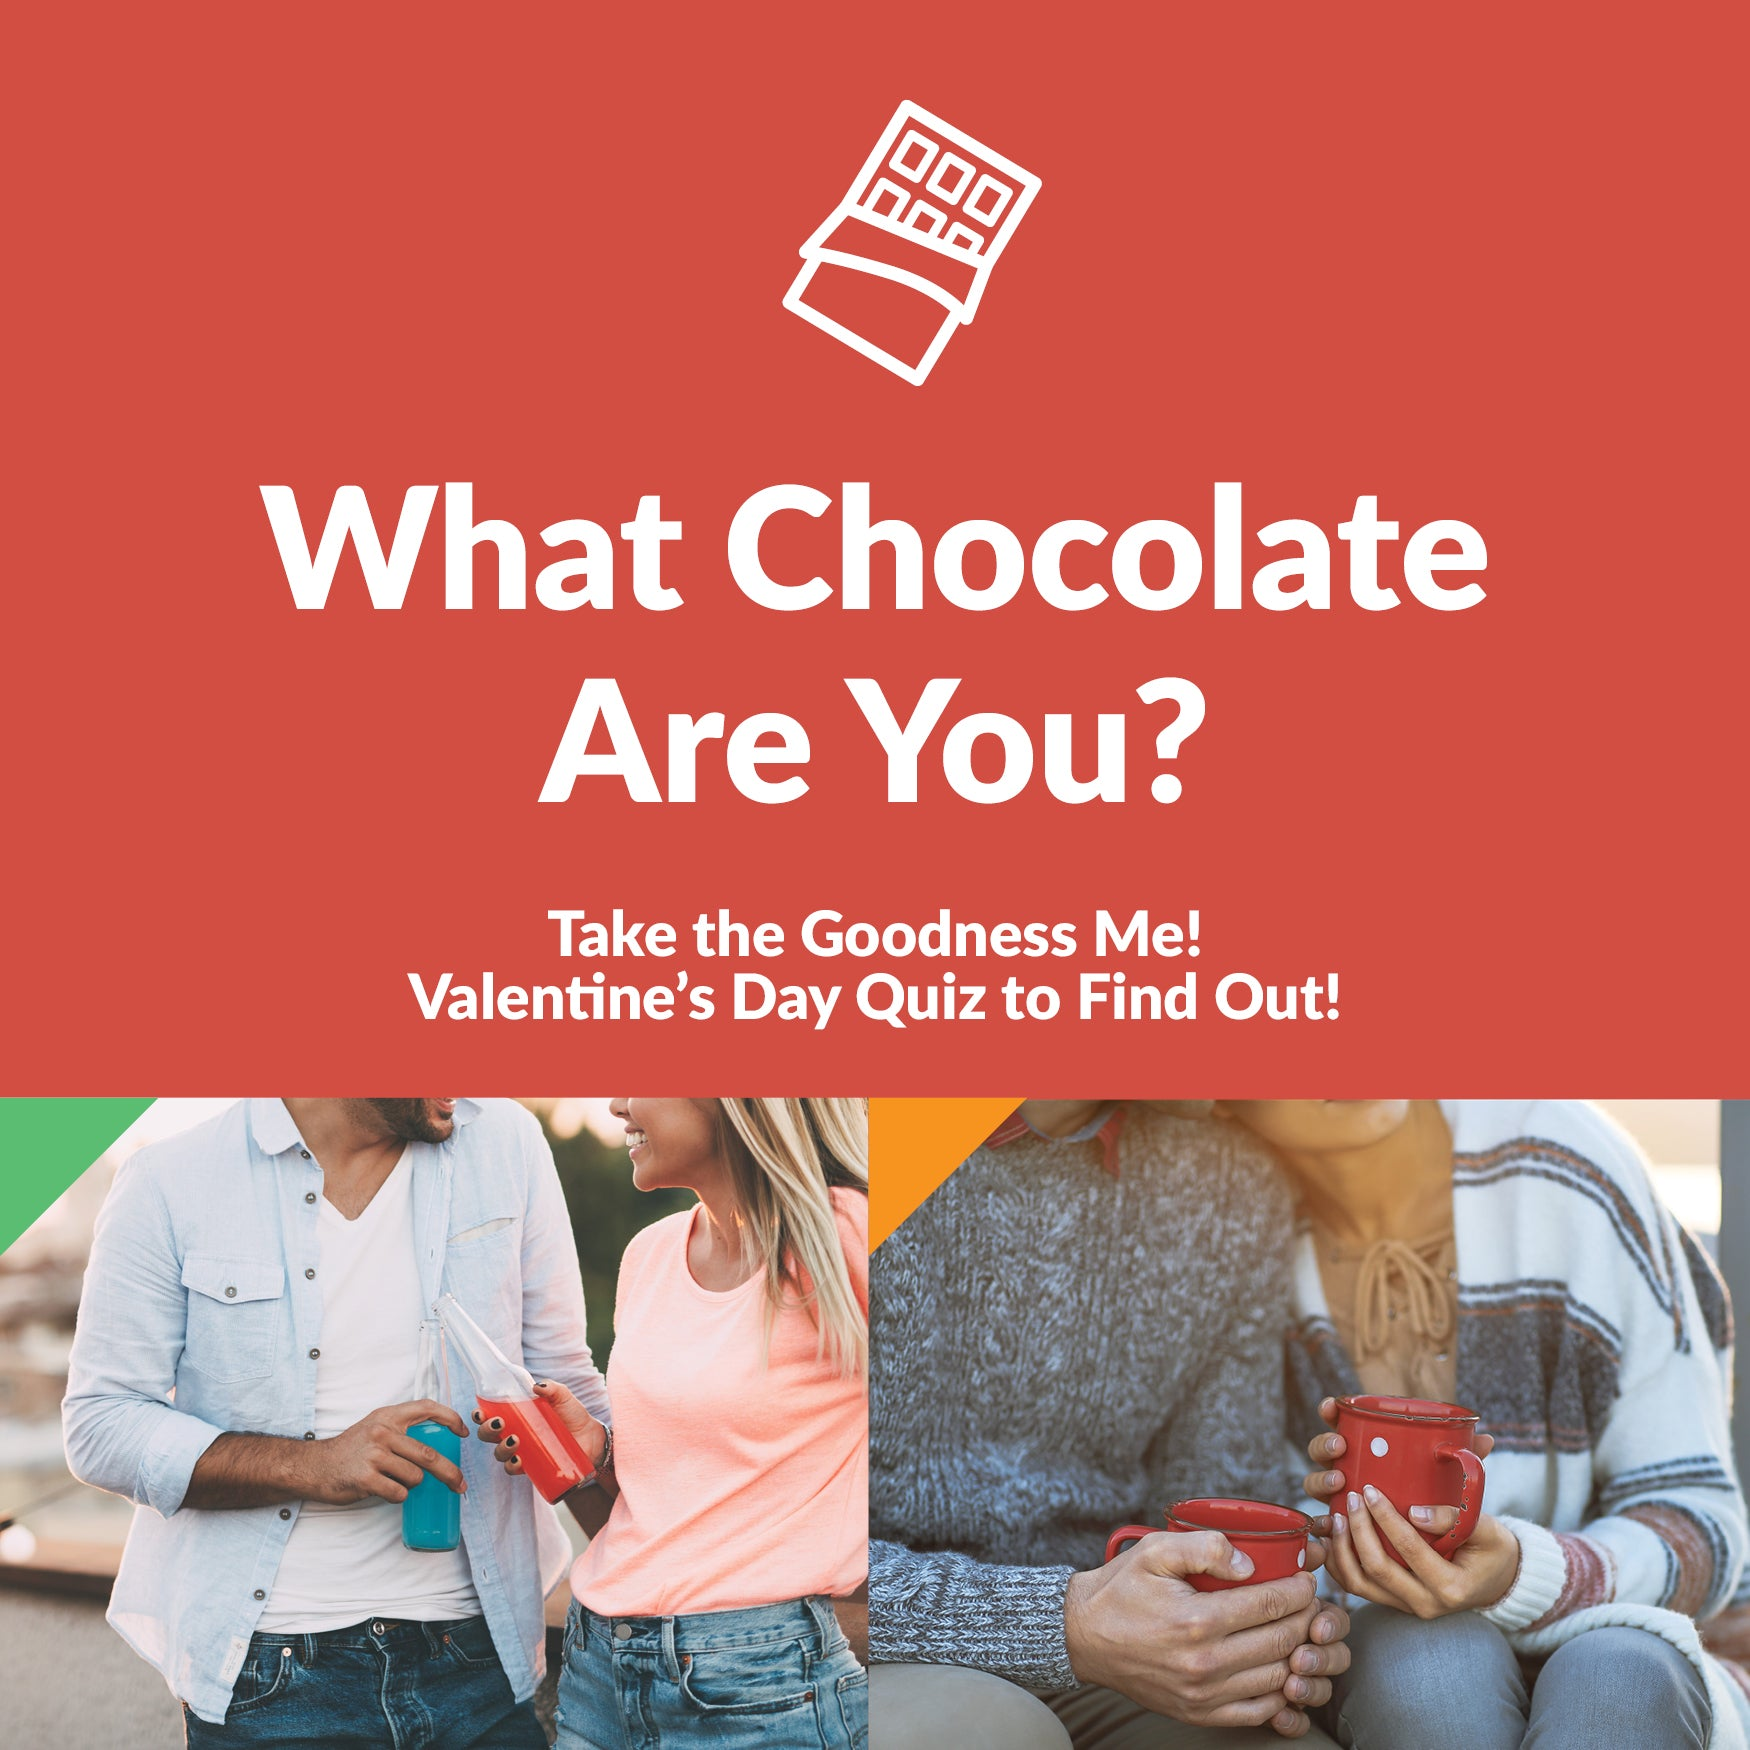 What Chocolate Flavour Are You?